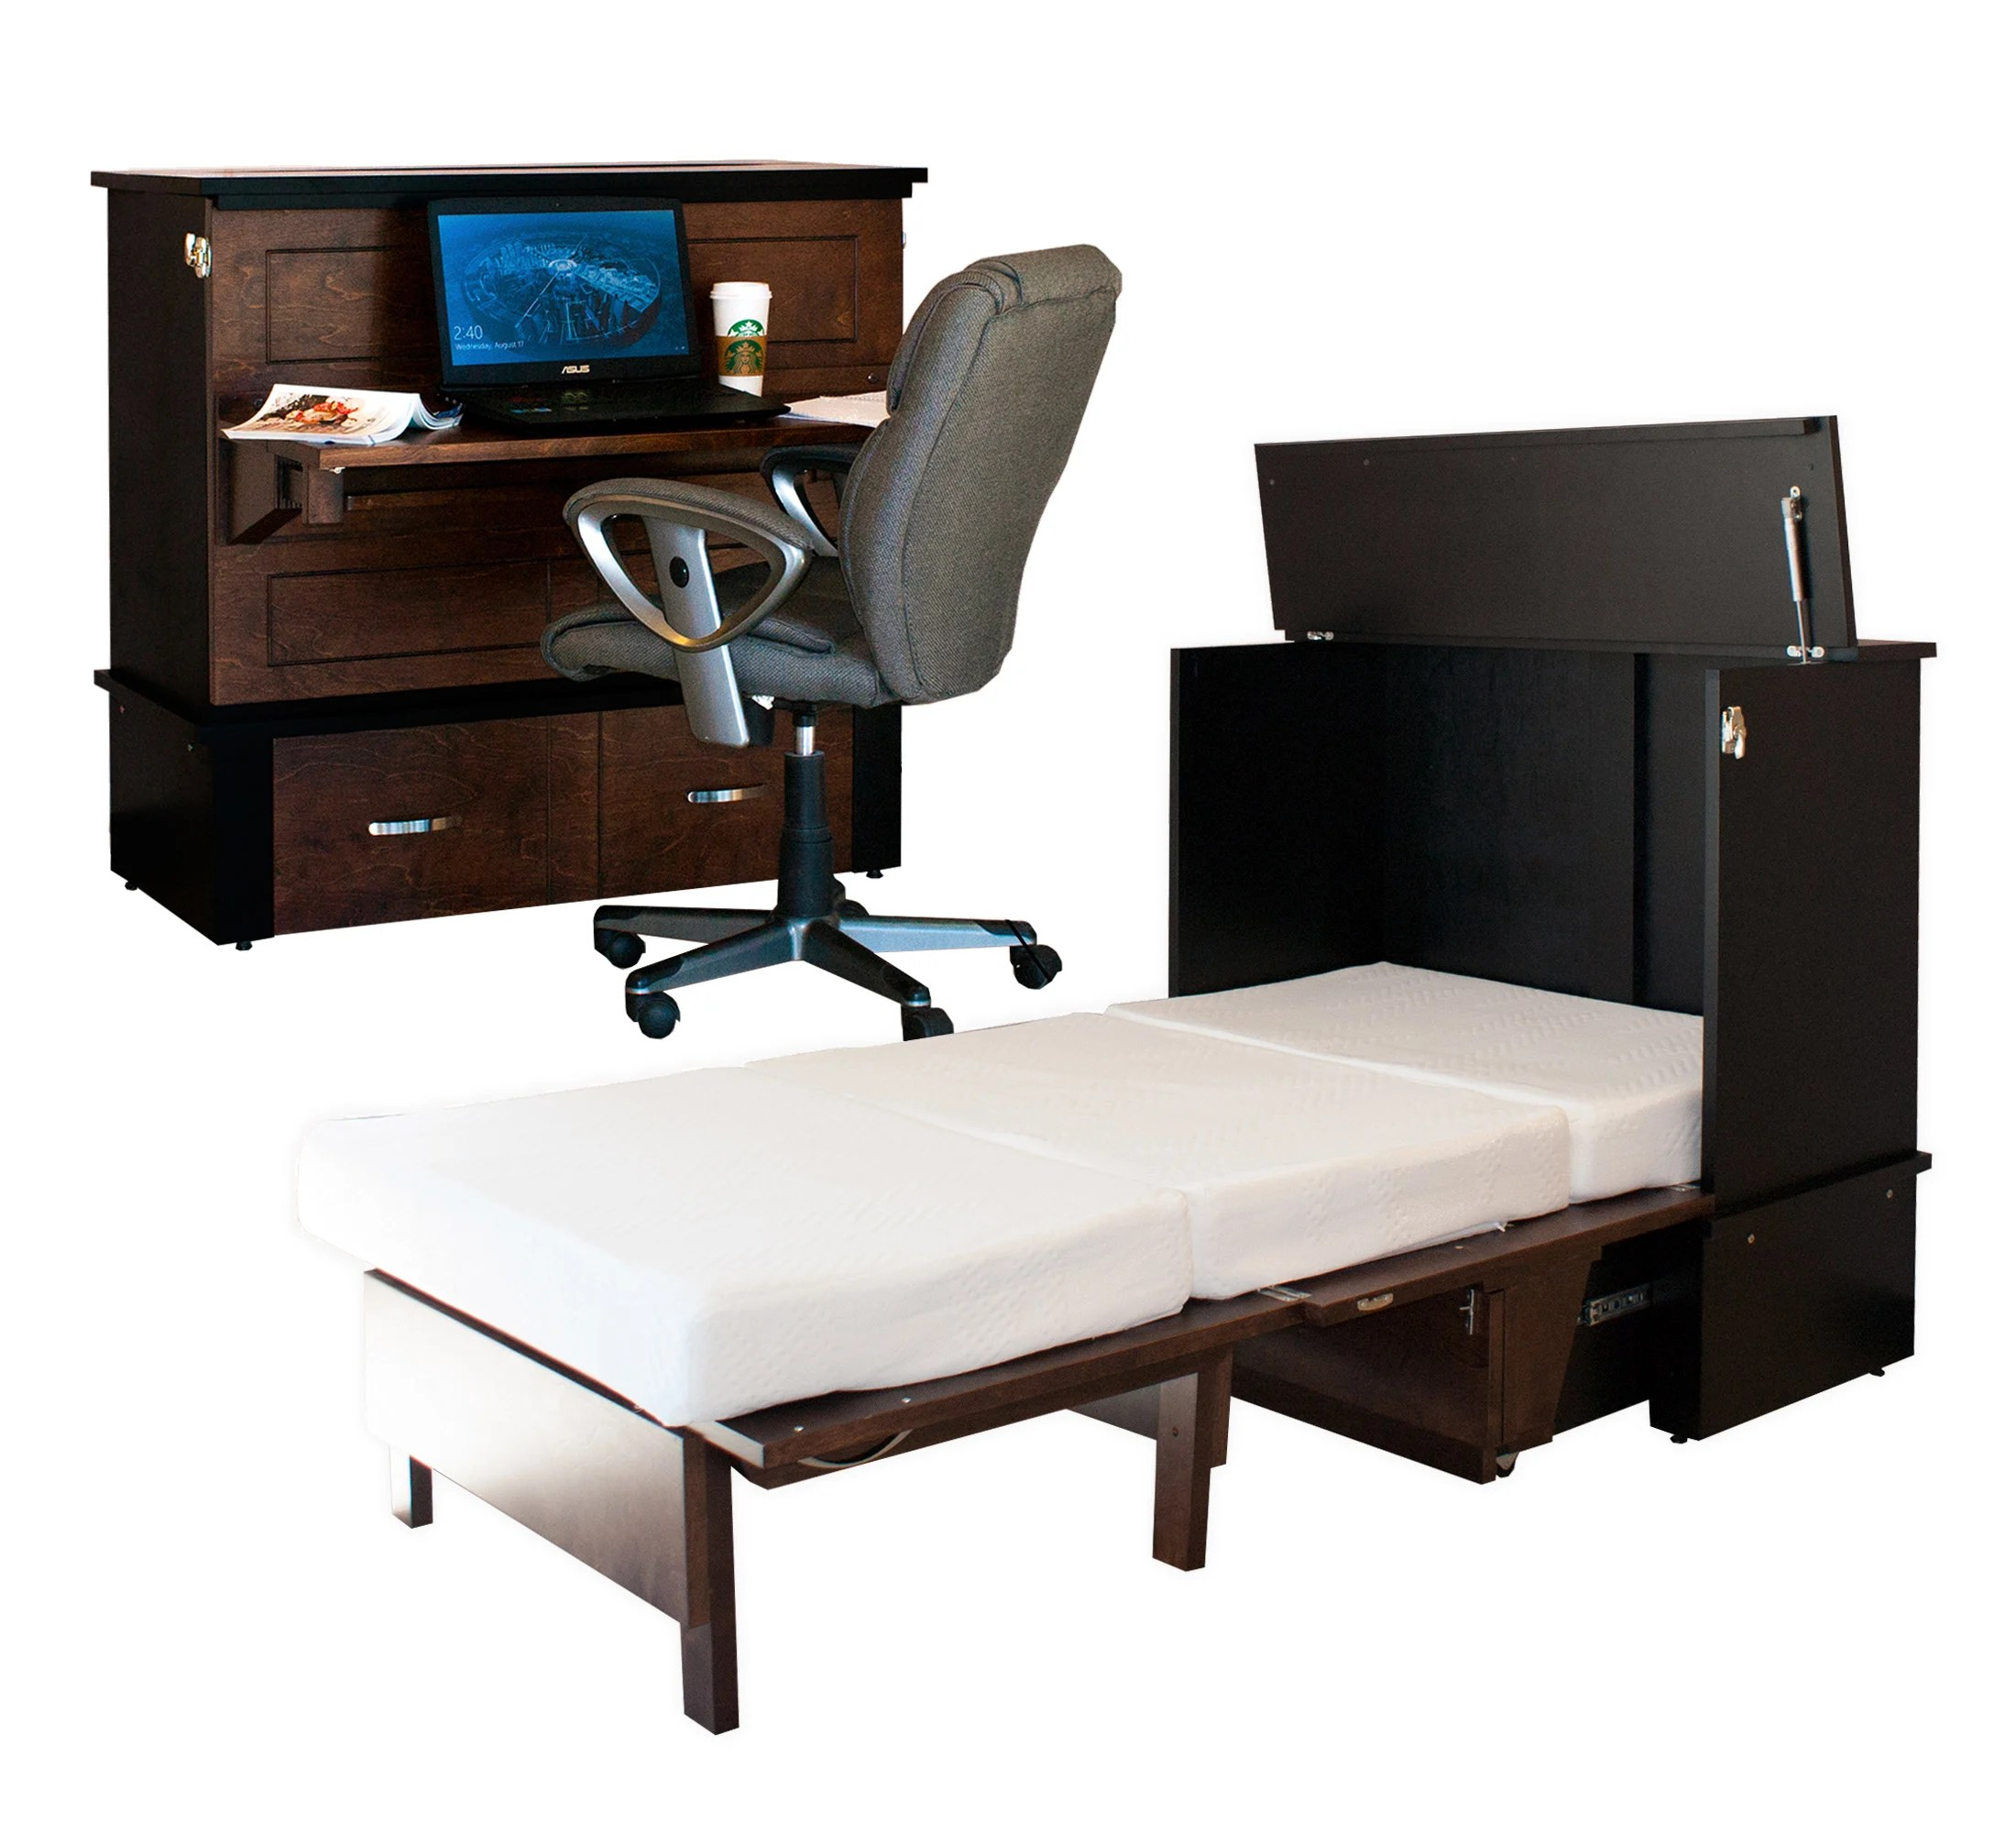 Study Buddy Cabinet Bed Murphy Bed By Cabinetbed